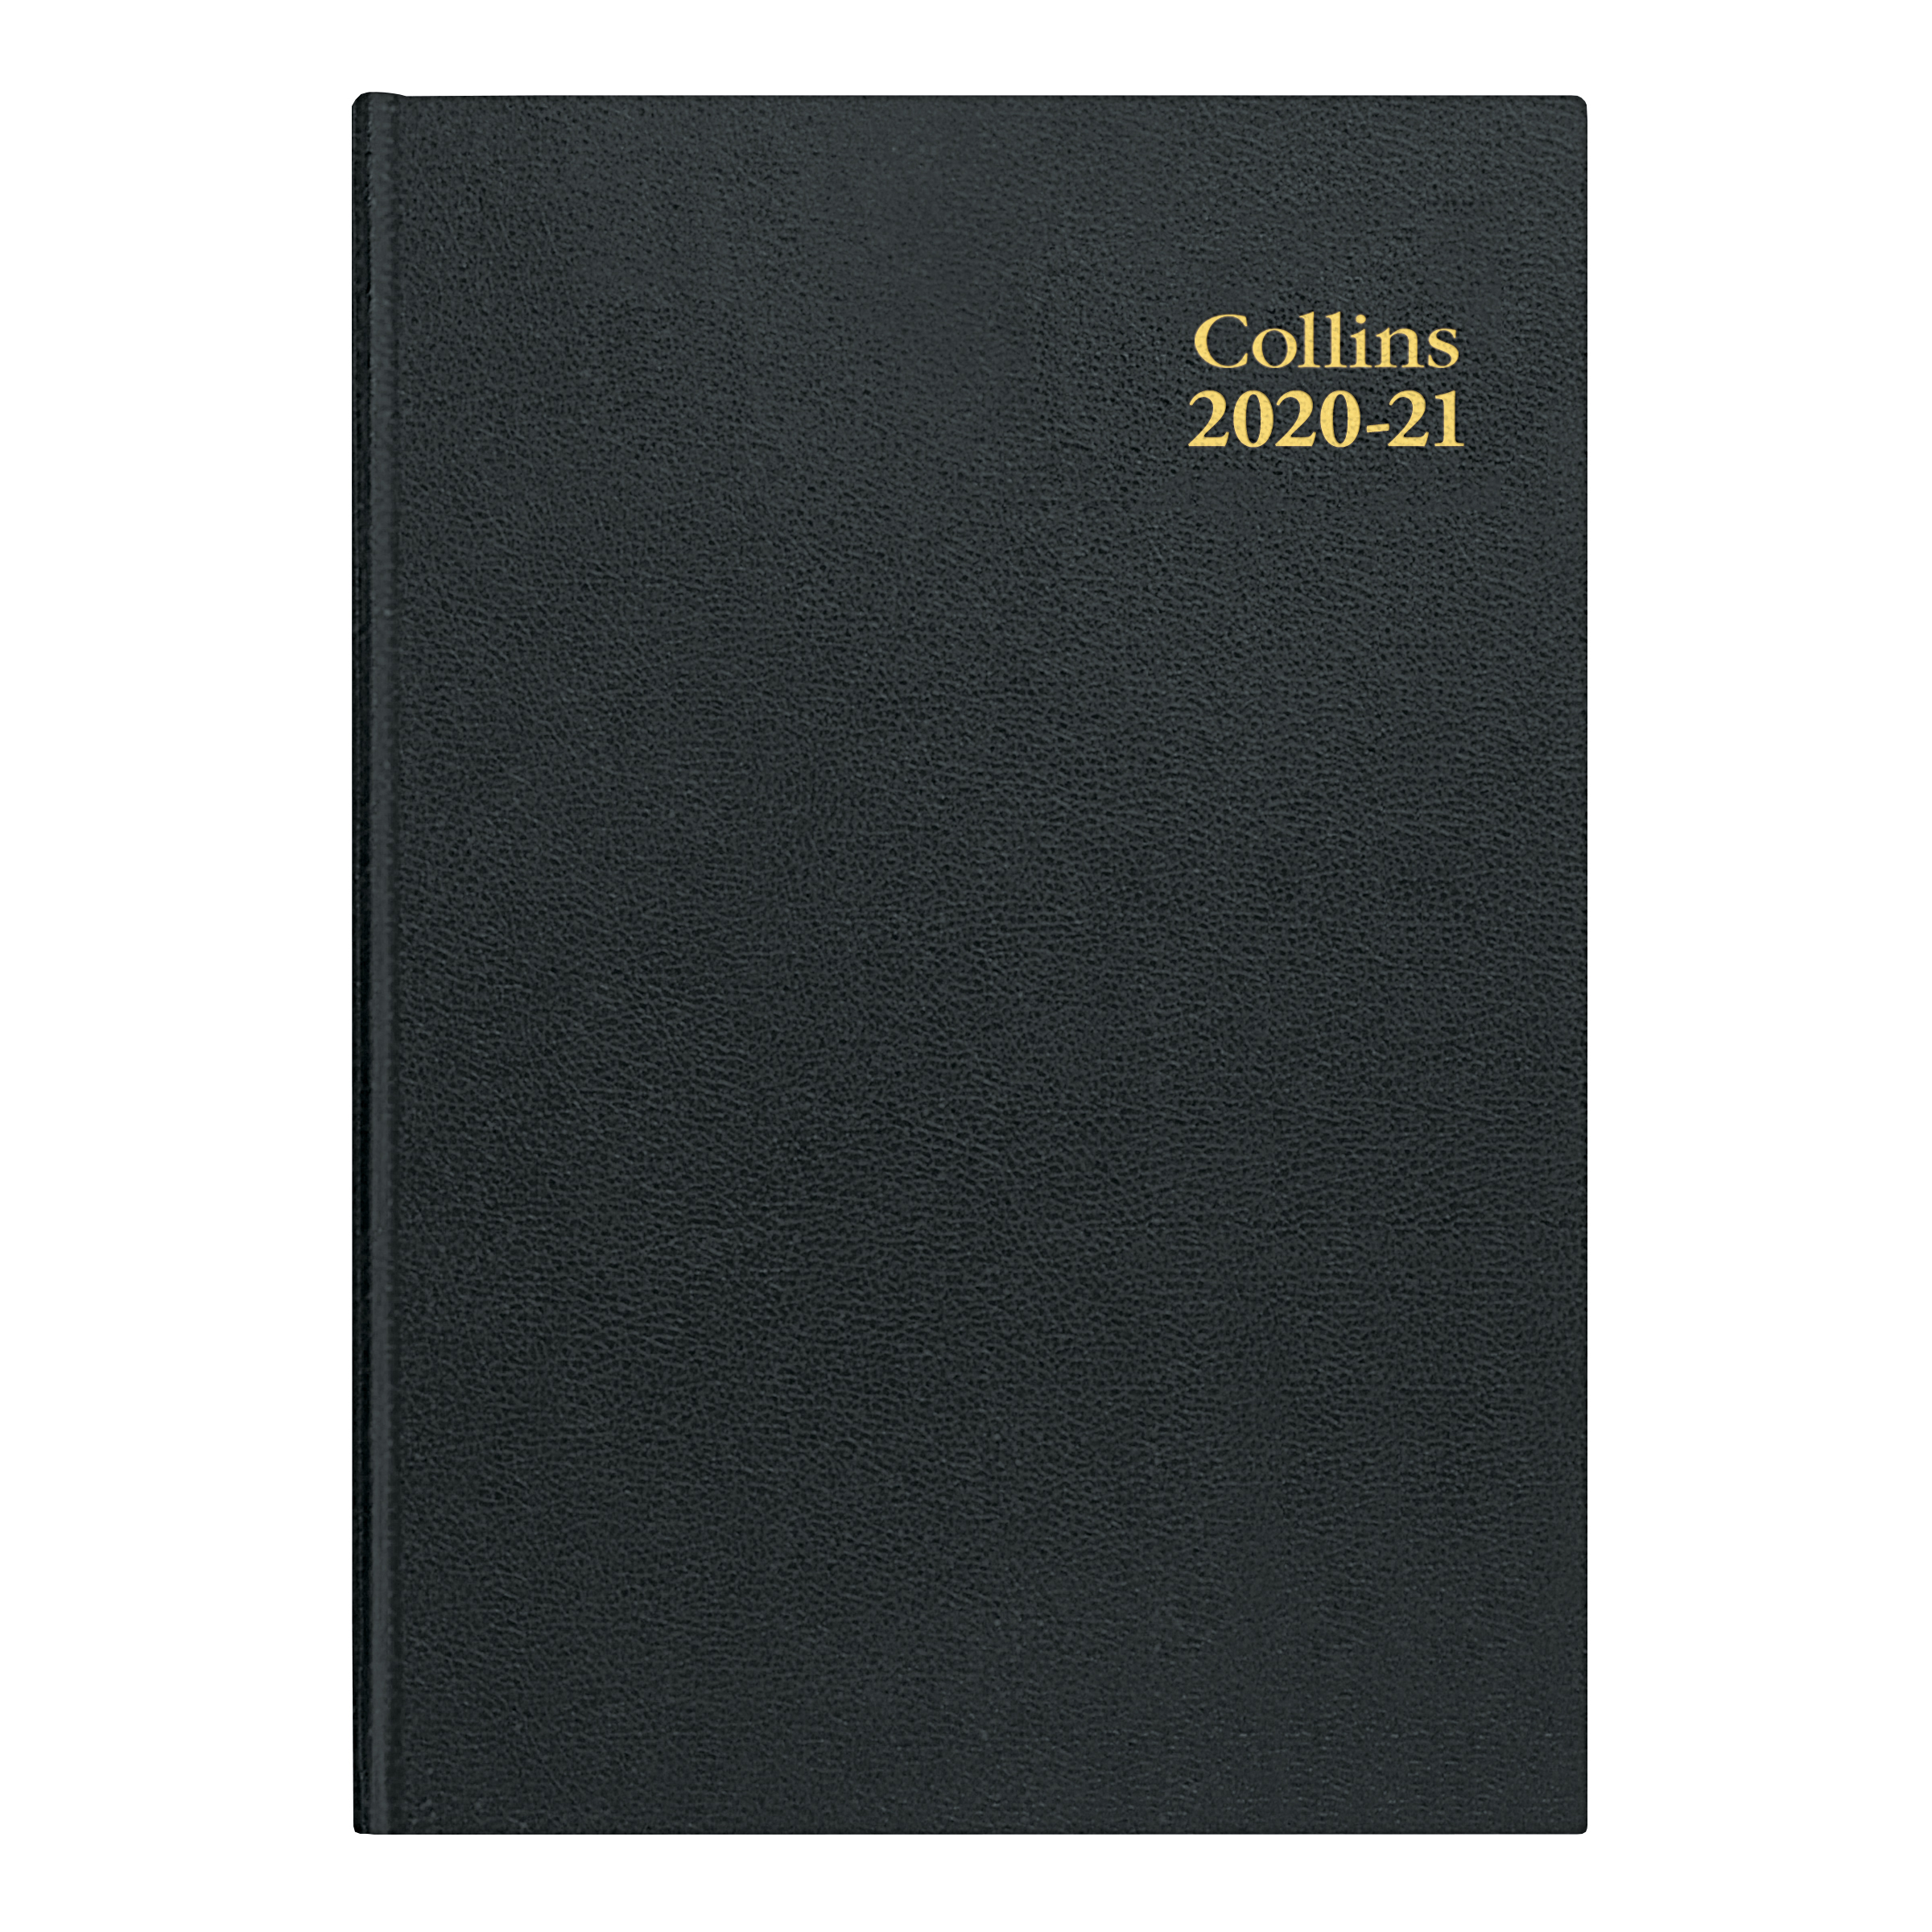 Diaries Collins 2020/21 Academic Diary Week-to-View A5 Black Ref 38M.99-2021